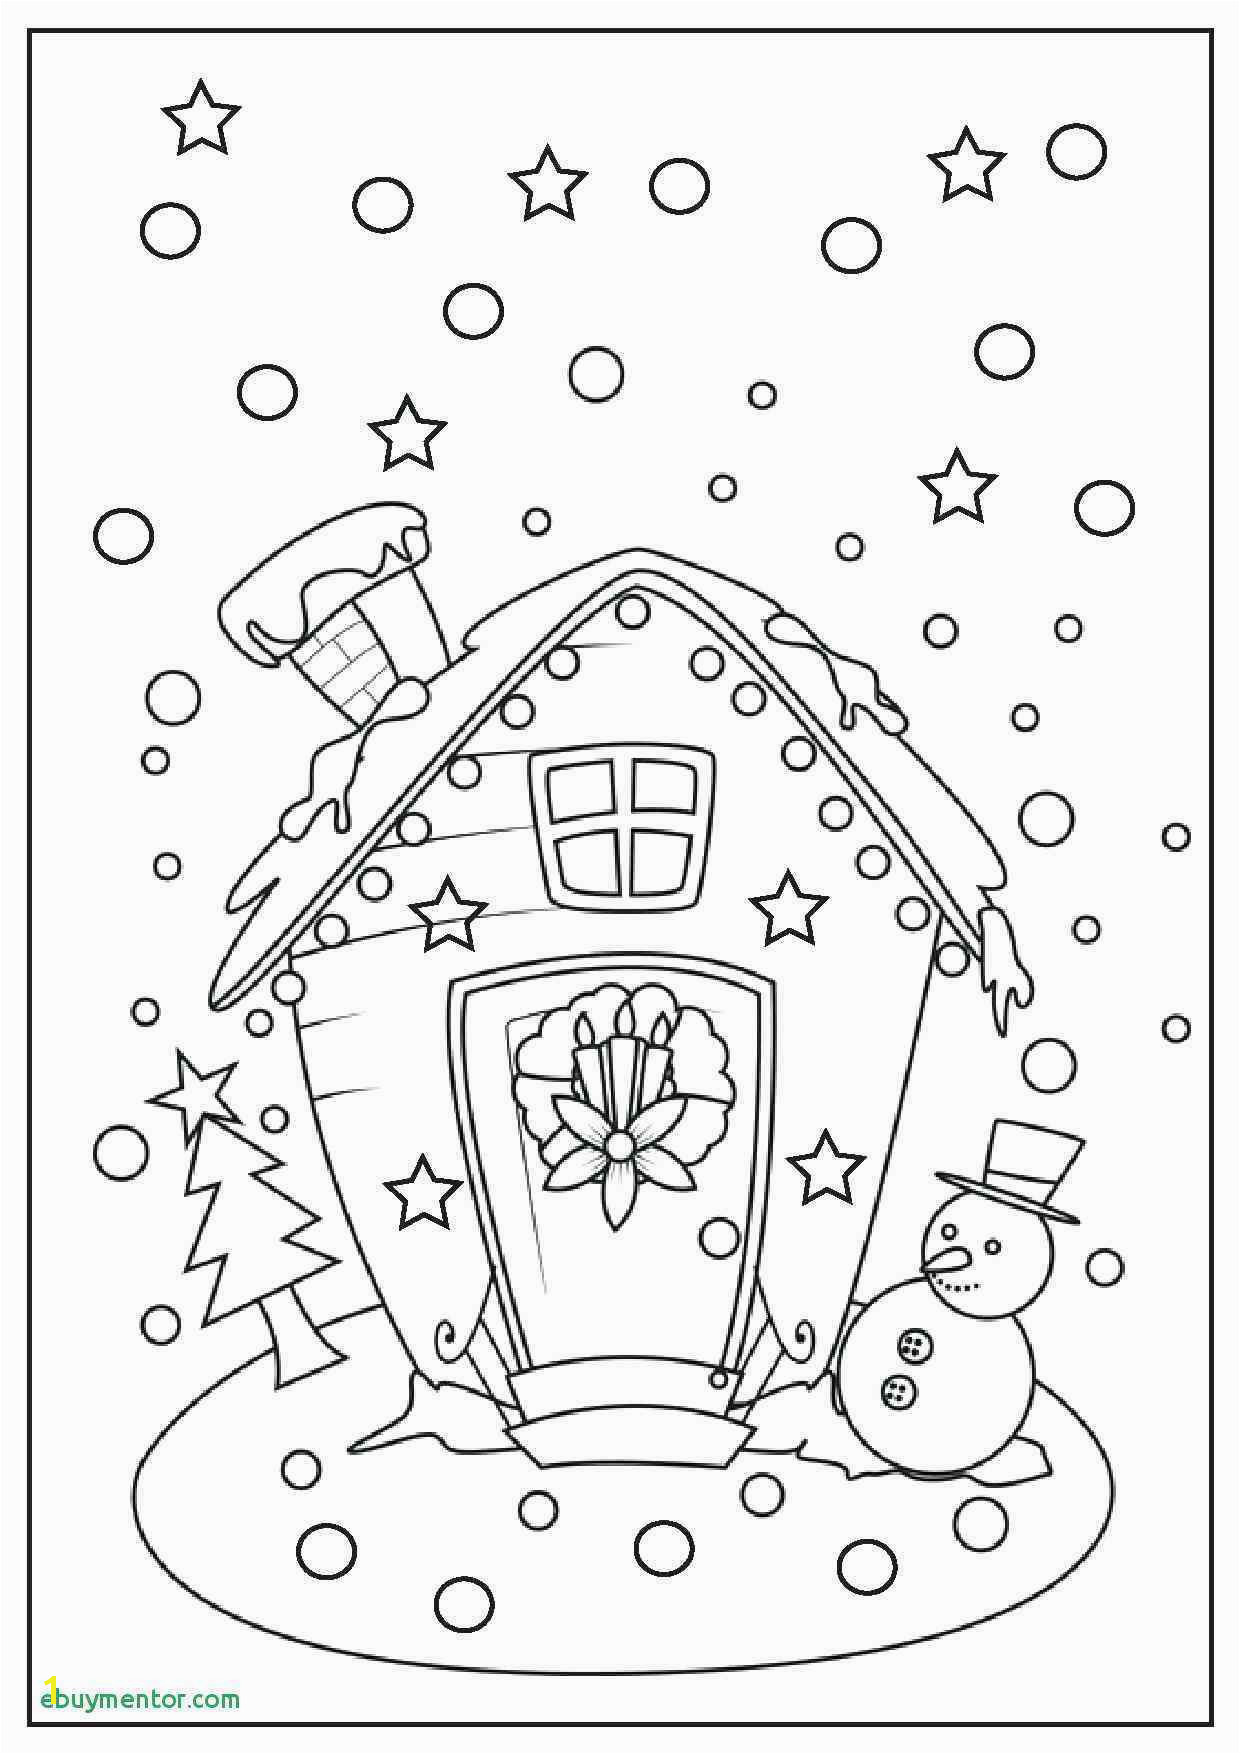 Cool Coloring Page Unique Witch Coloring Pages New Crayola Pages 0d Lovely Christmas Coloring Pages